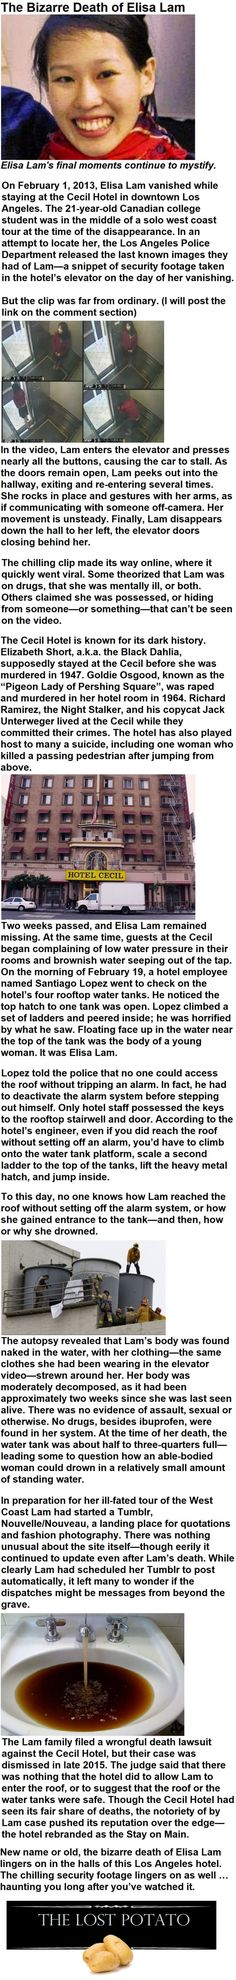 The Bizarre Death of Elisa Lam - FunSubstance Paranormal Stories, Scary Stories, Paranormal Activities, Bizarre Pictures, Best Funny Pictures, Urban Legends Stories, Wtf Fun Facts, Random Facts, Random Stuff